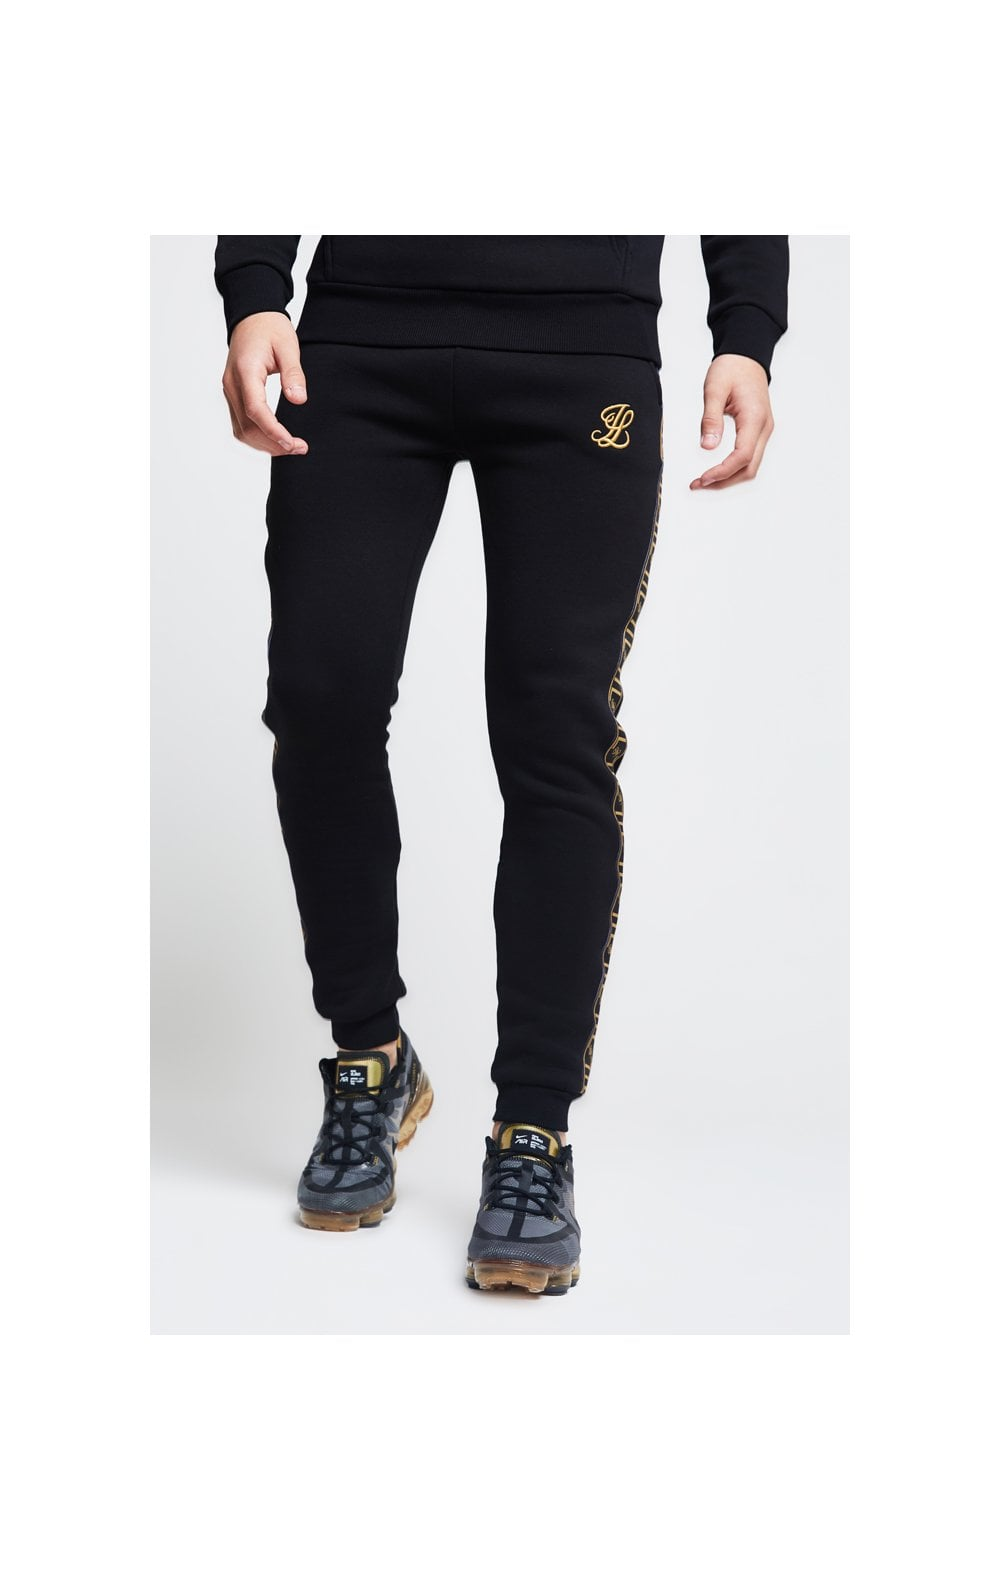 Load image into Gallery viewer, Illusive London Taped Cuffed Joggers – Black (1)